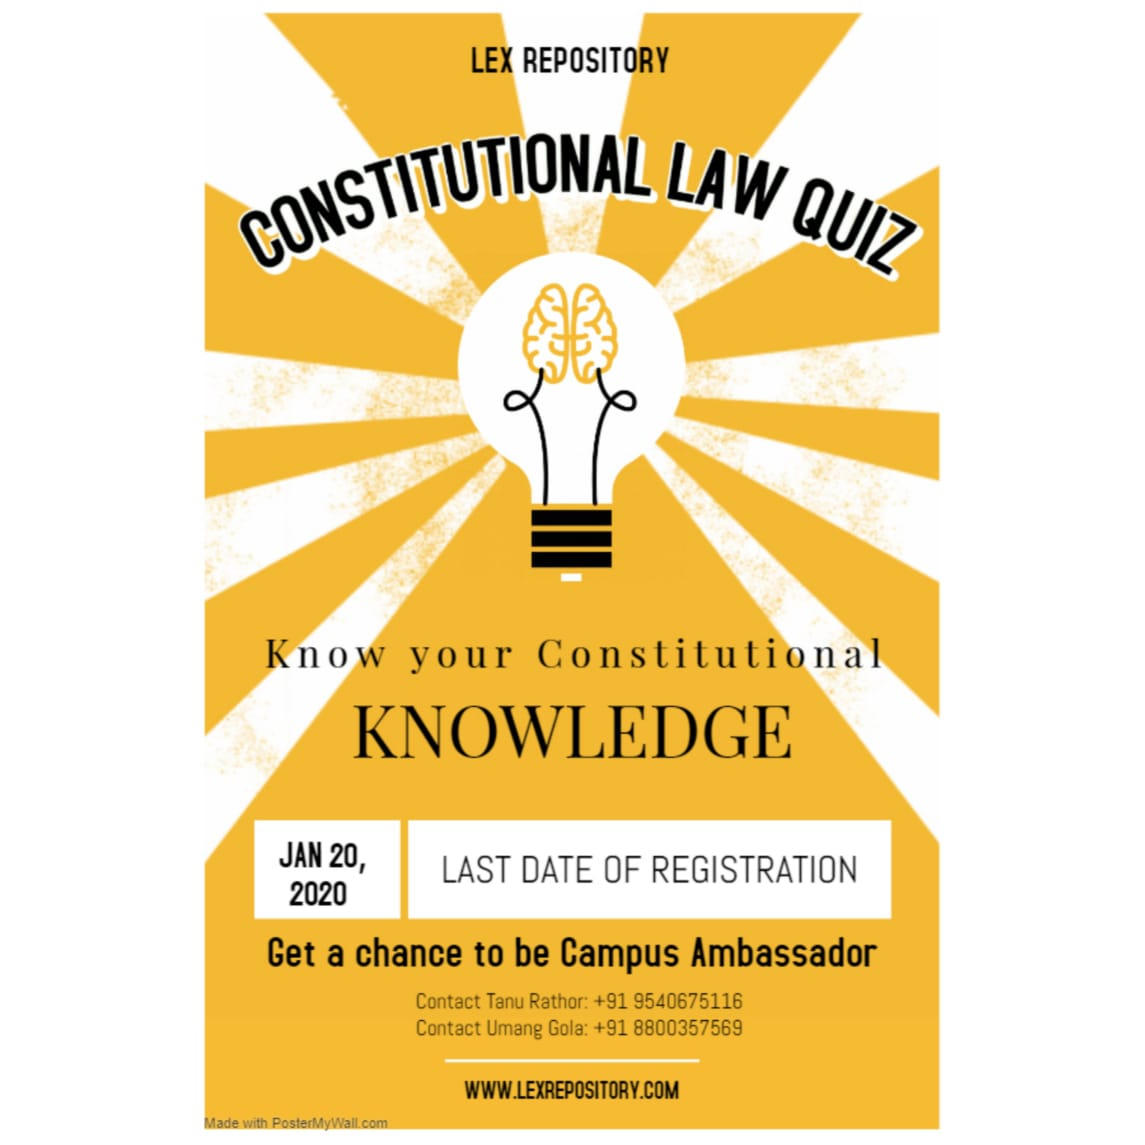 I ONLINE QUIZ COMPETITION ON CONSTITUTIONAL LAW